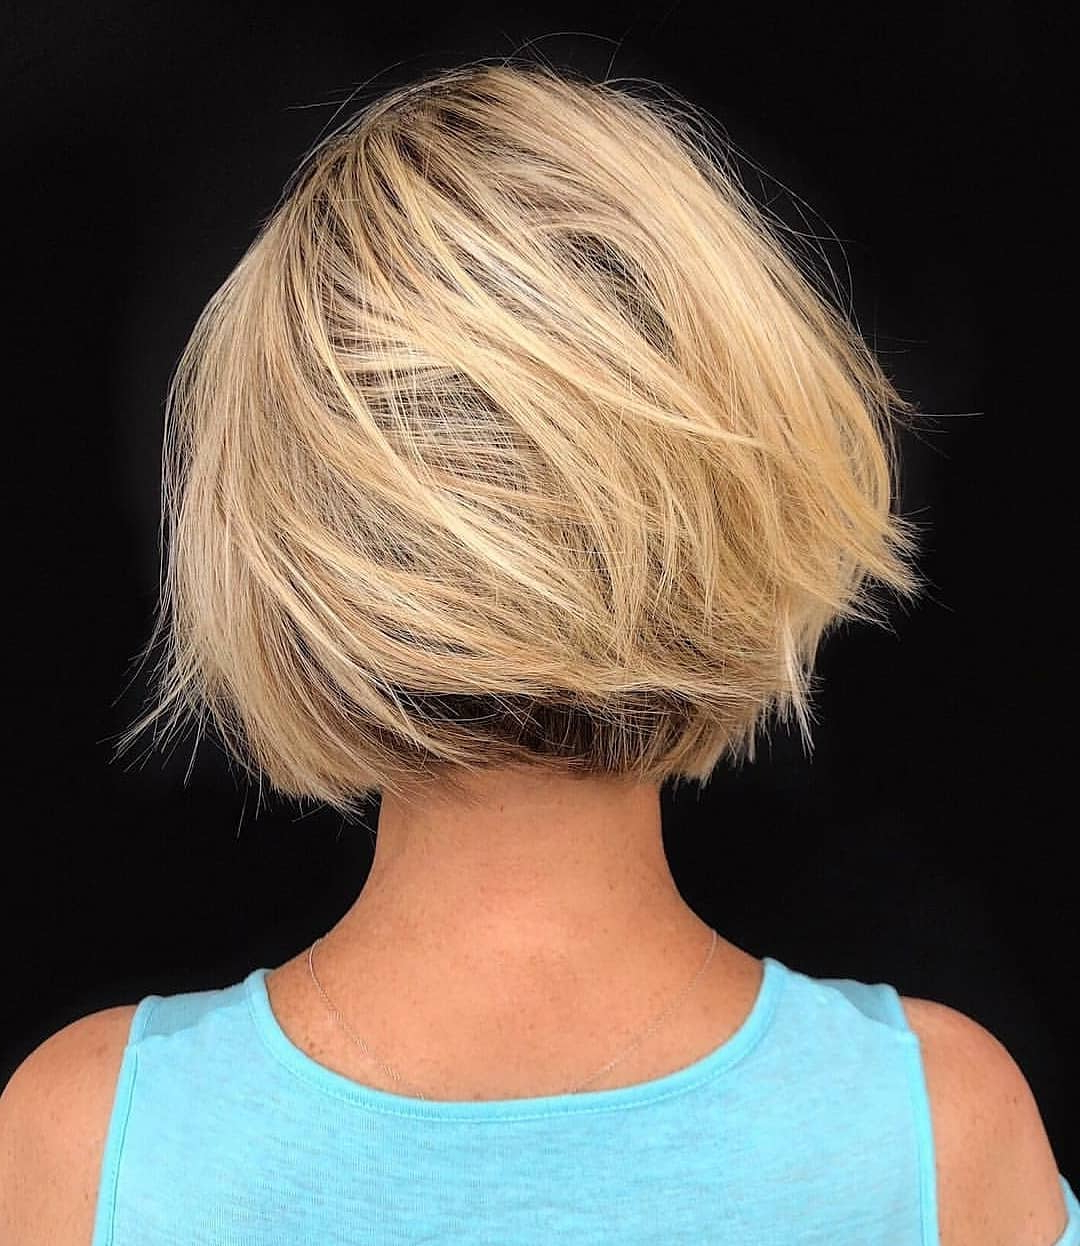 Top 10 Low Maintenance Short Bob Cuts For Thick Hair, Short Intended For Low Maintenance Short Hairstyles (View 8 of 25)